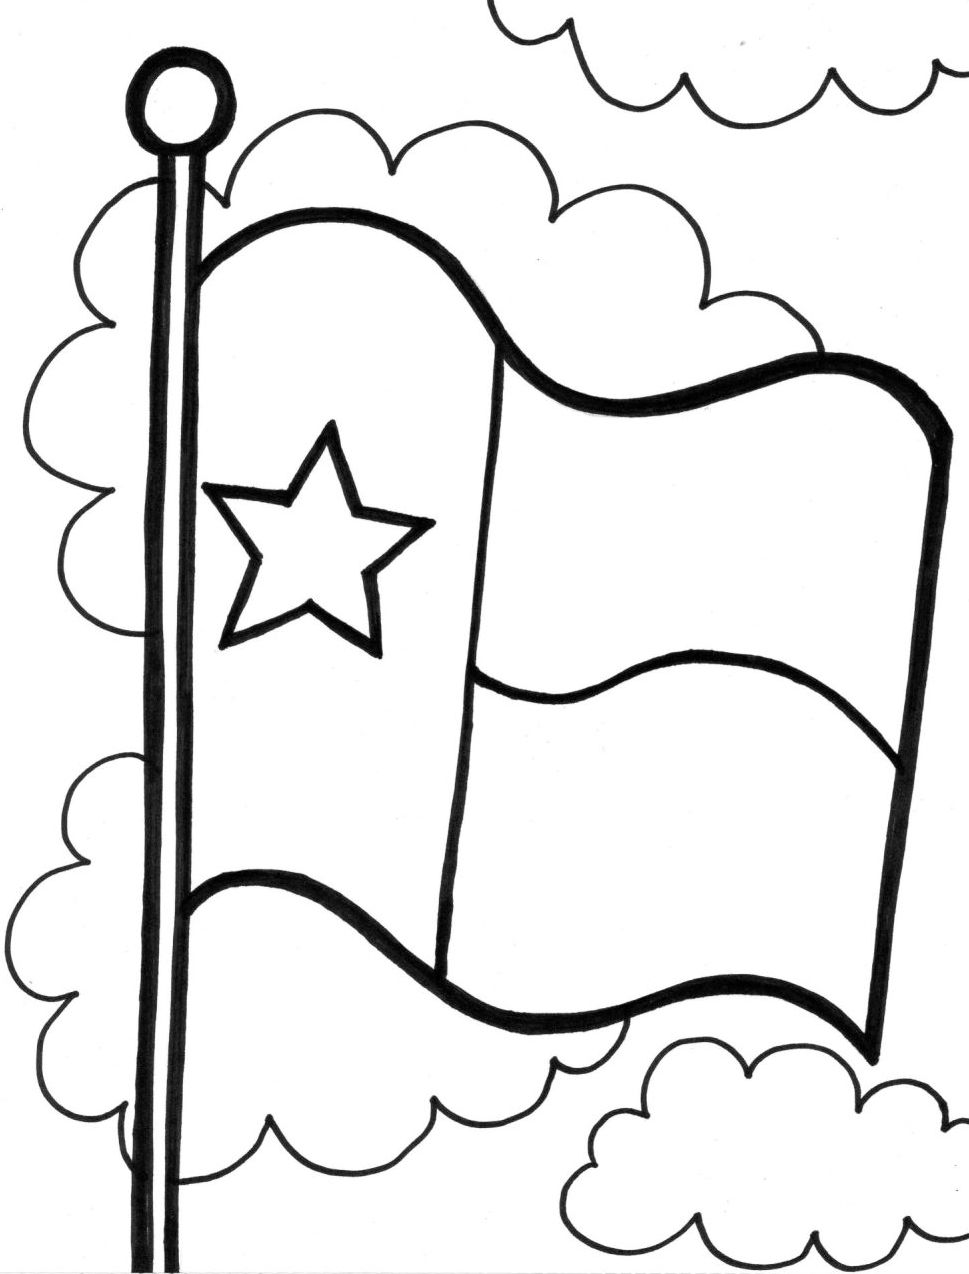 Texas Symbol Coloring Pages Coloring Pages